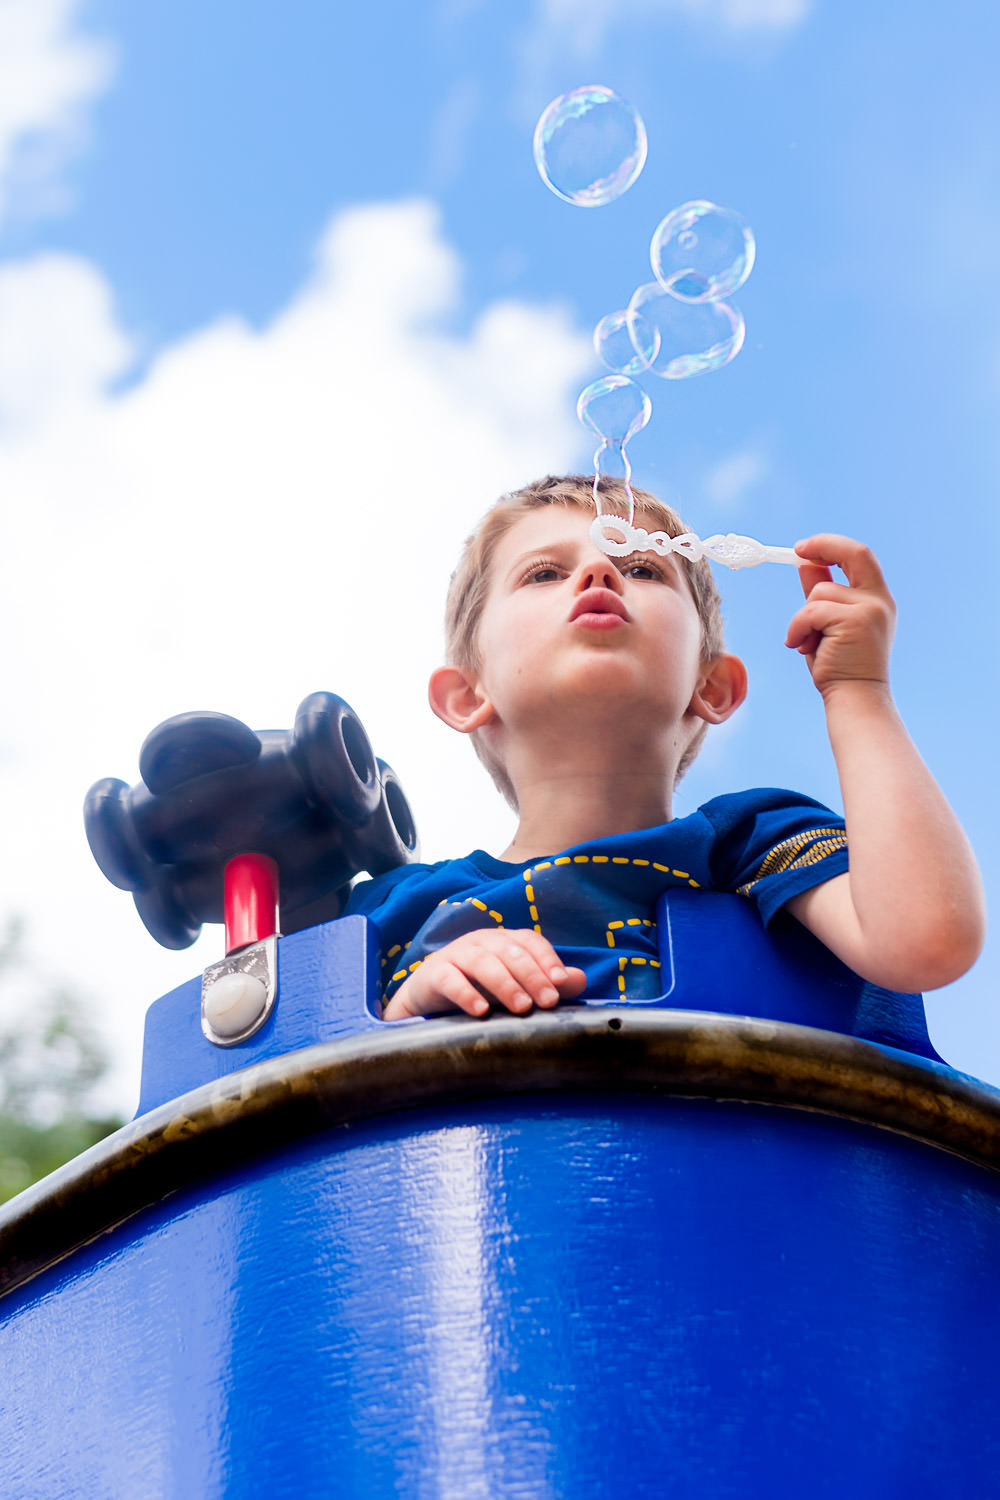 Boy blowing bubbles into blue sky wearing blue t-shirt from blue playground fort